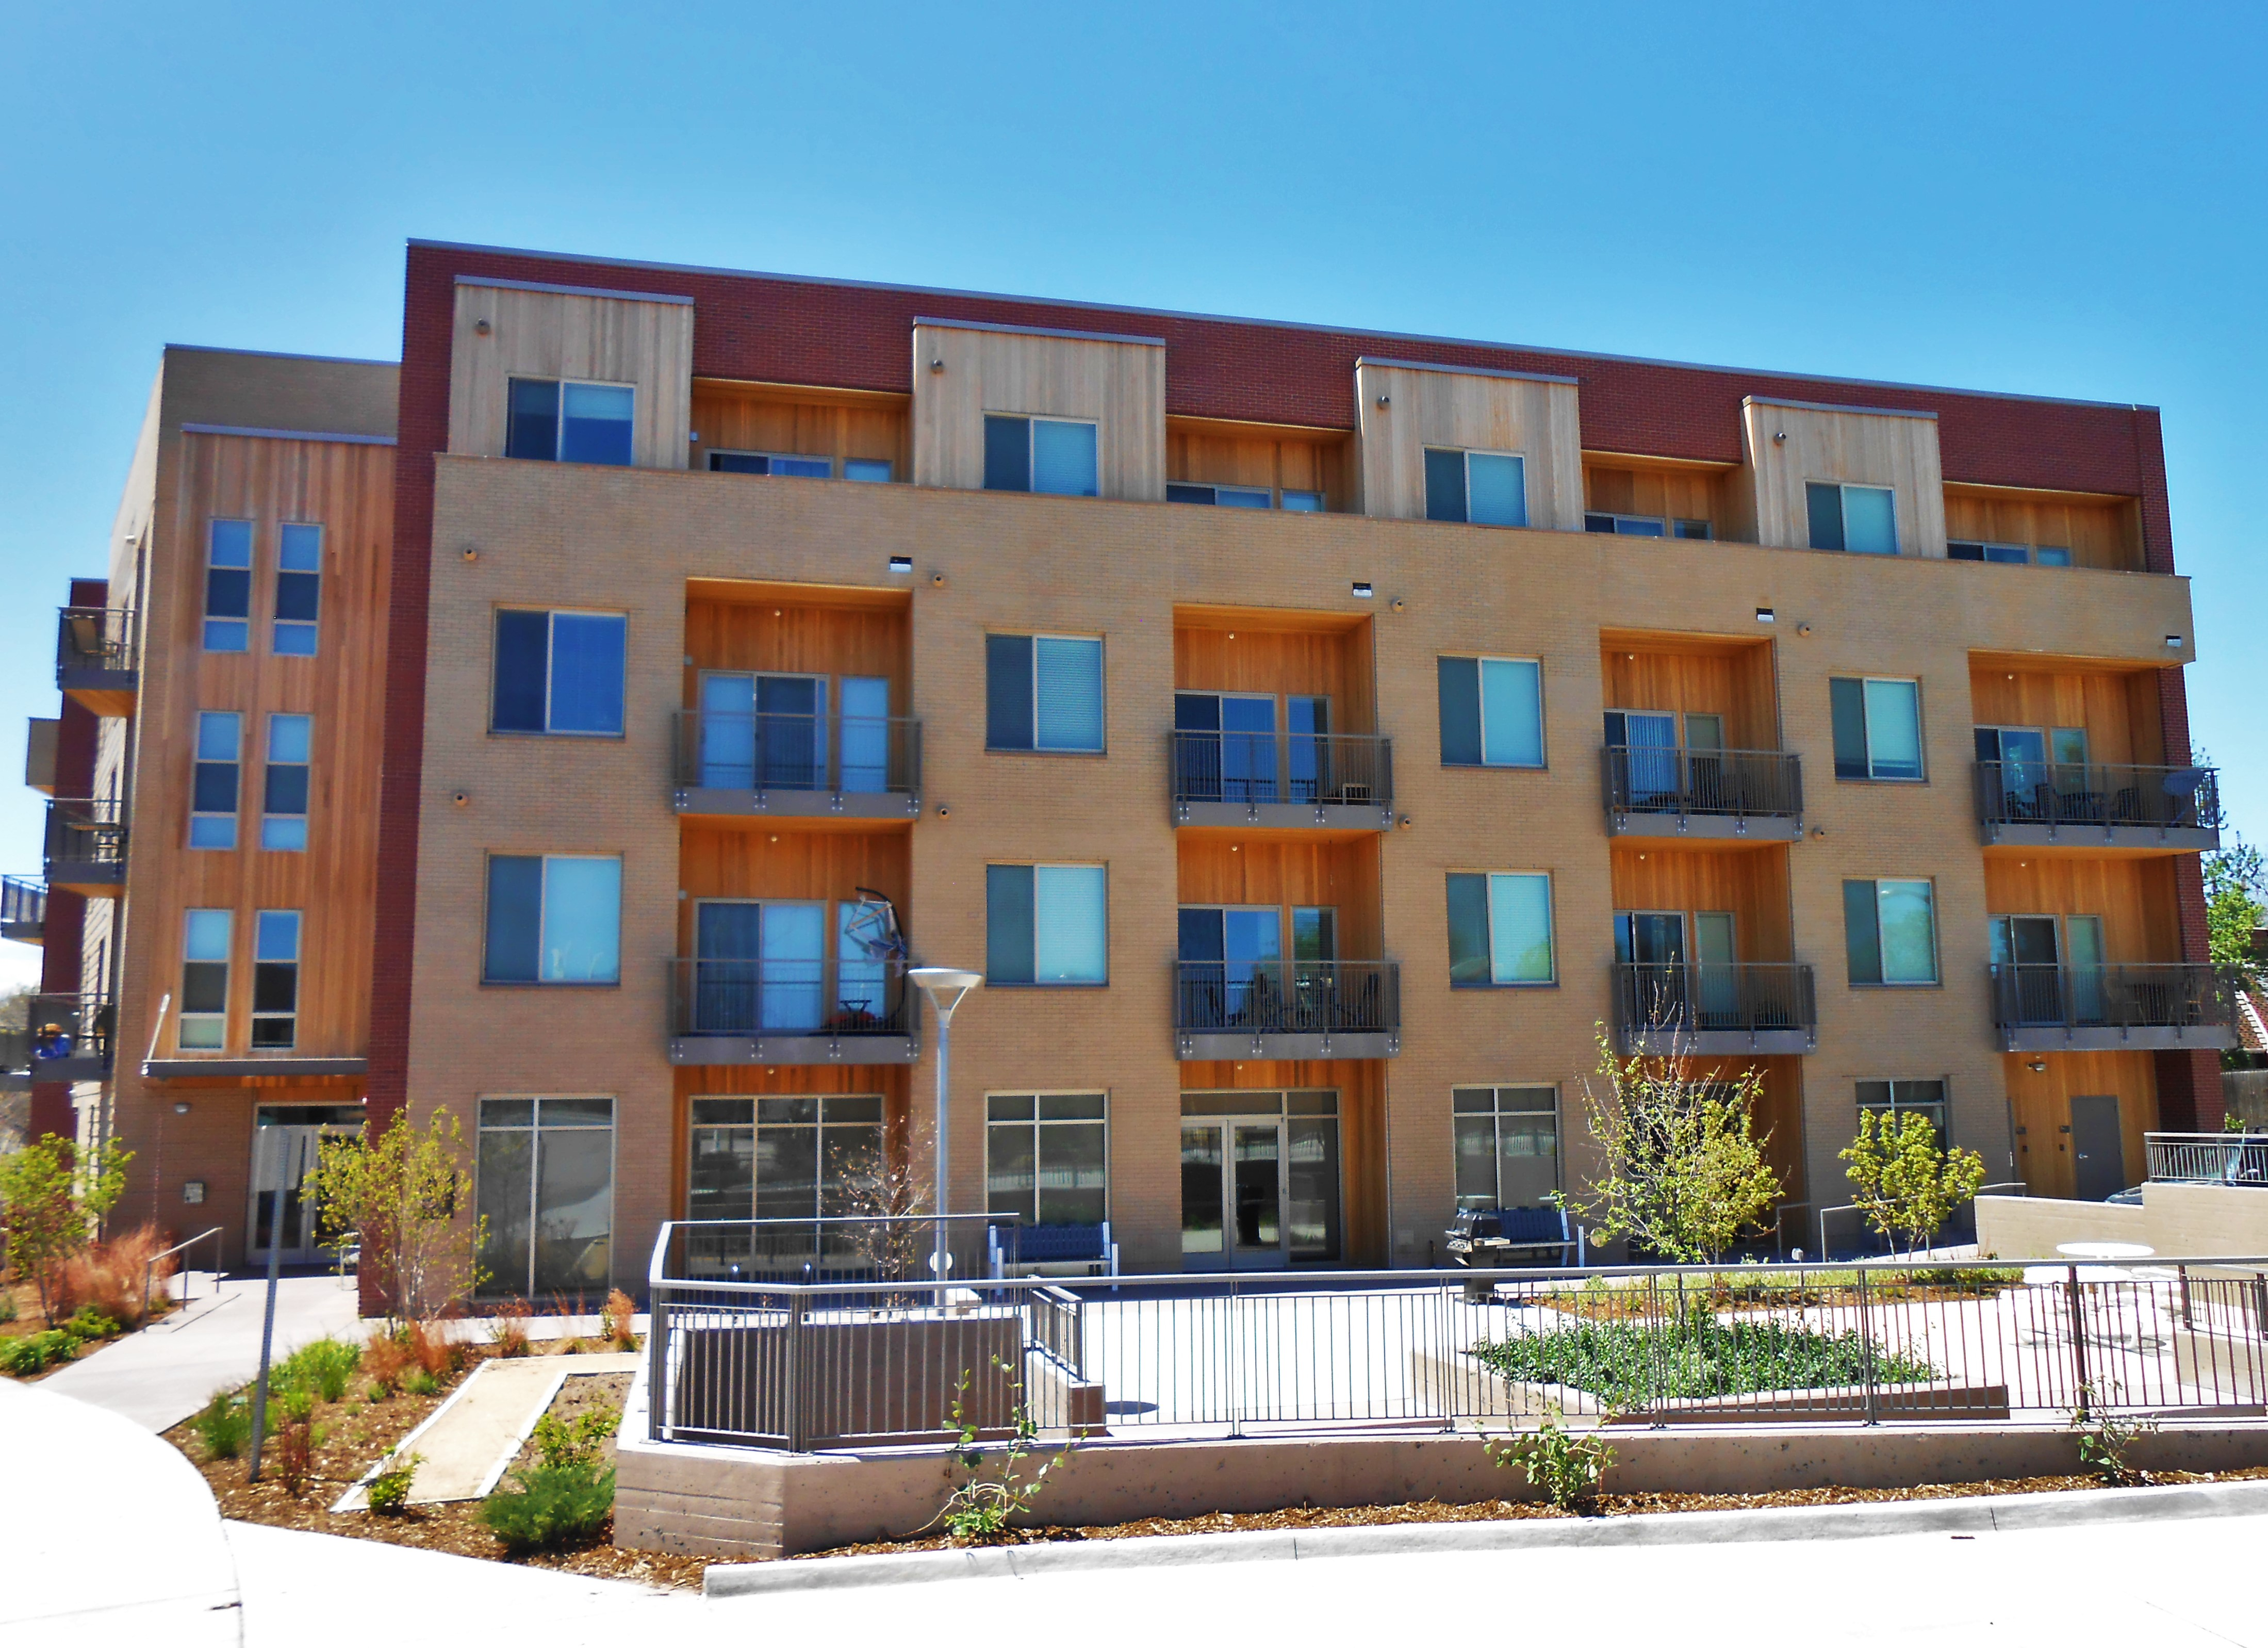 Real estate assets of the urban land conservancy in denver colorado for Garden court apartments denver